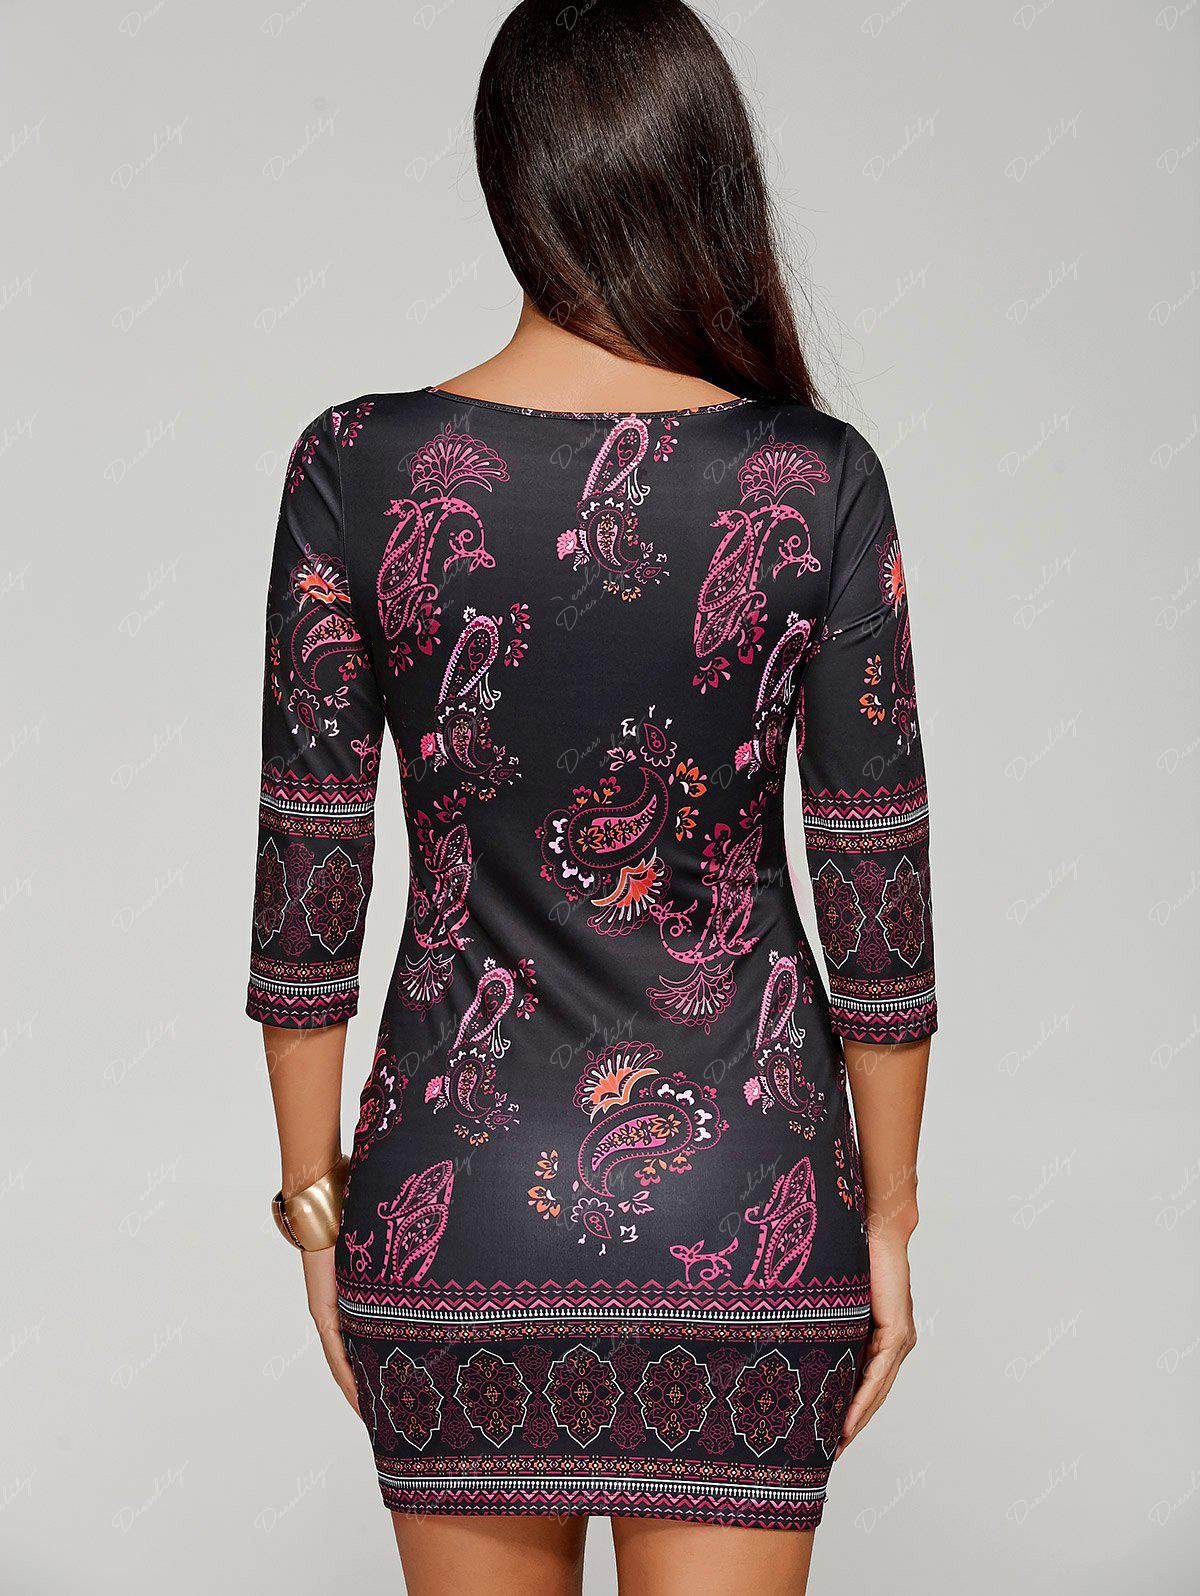 Paisley Keyhole Neck Mini Dress with Sleeves - BLACK M